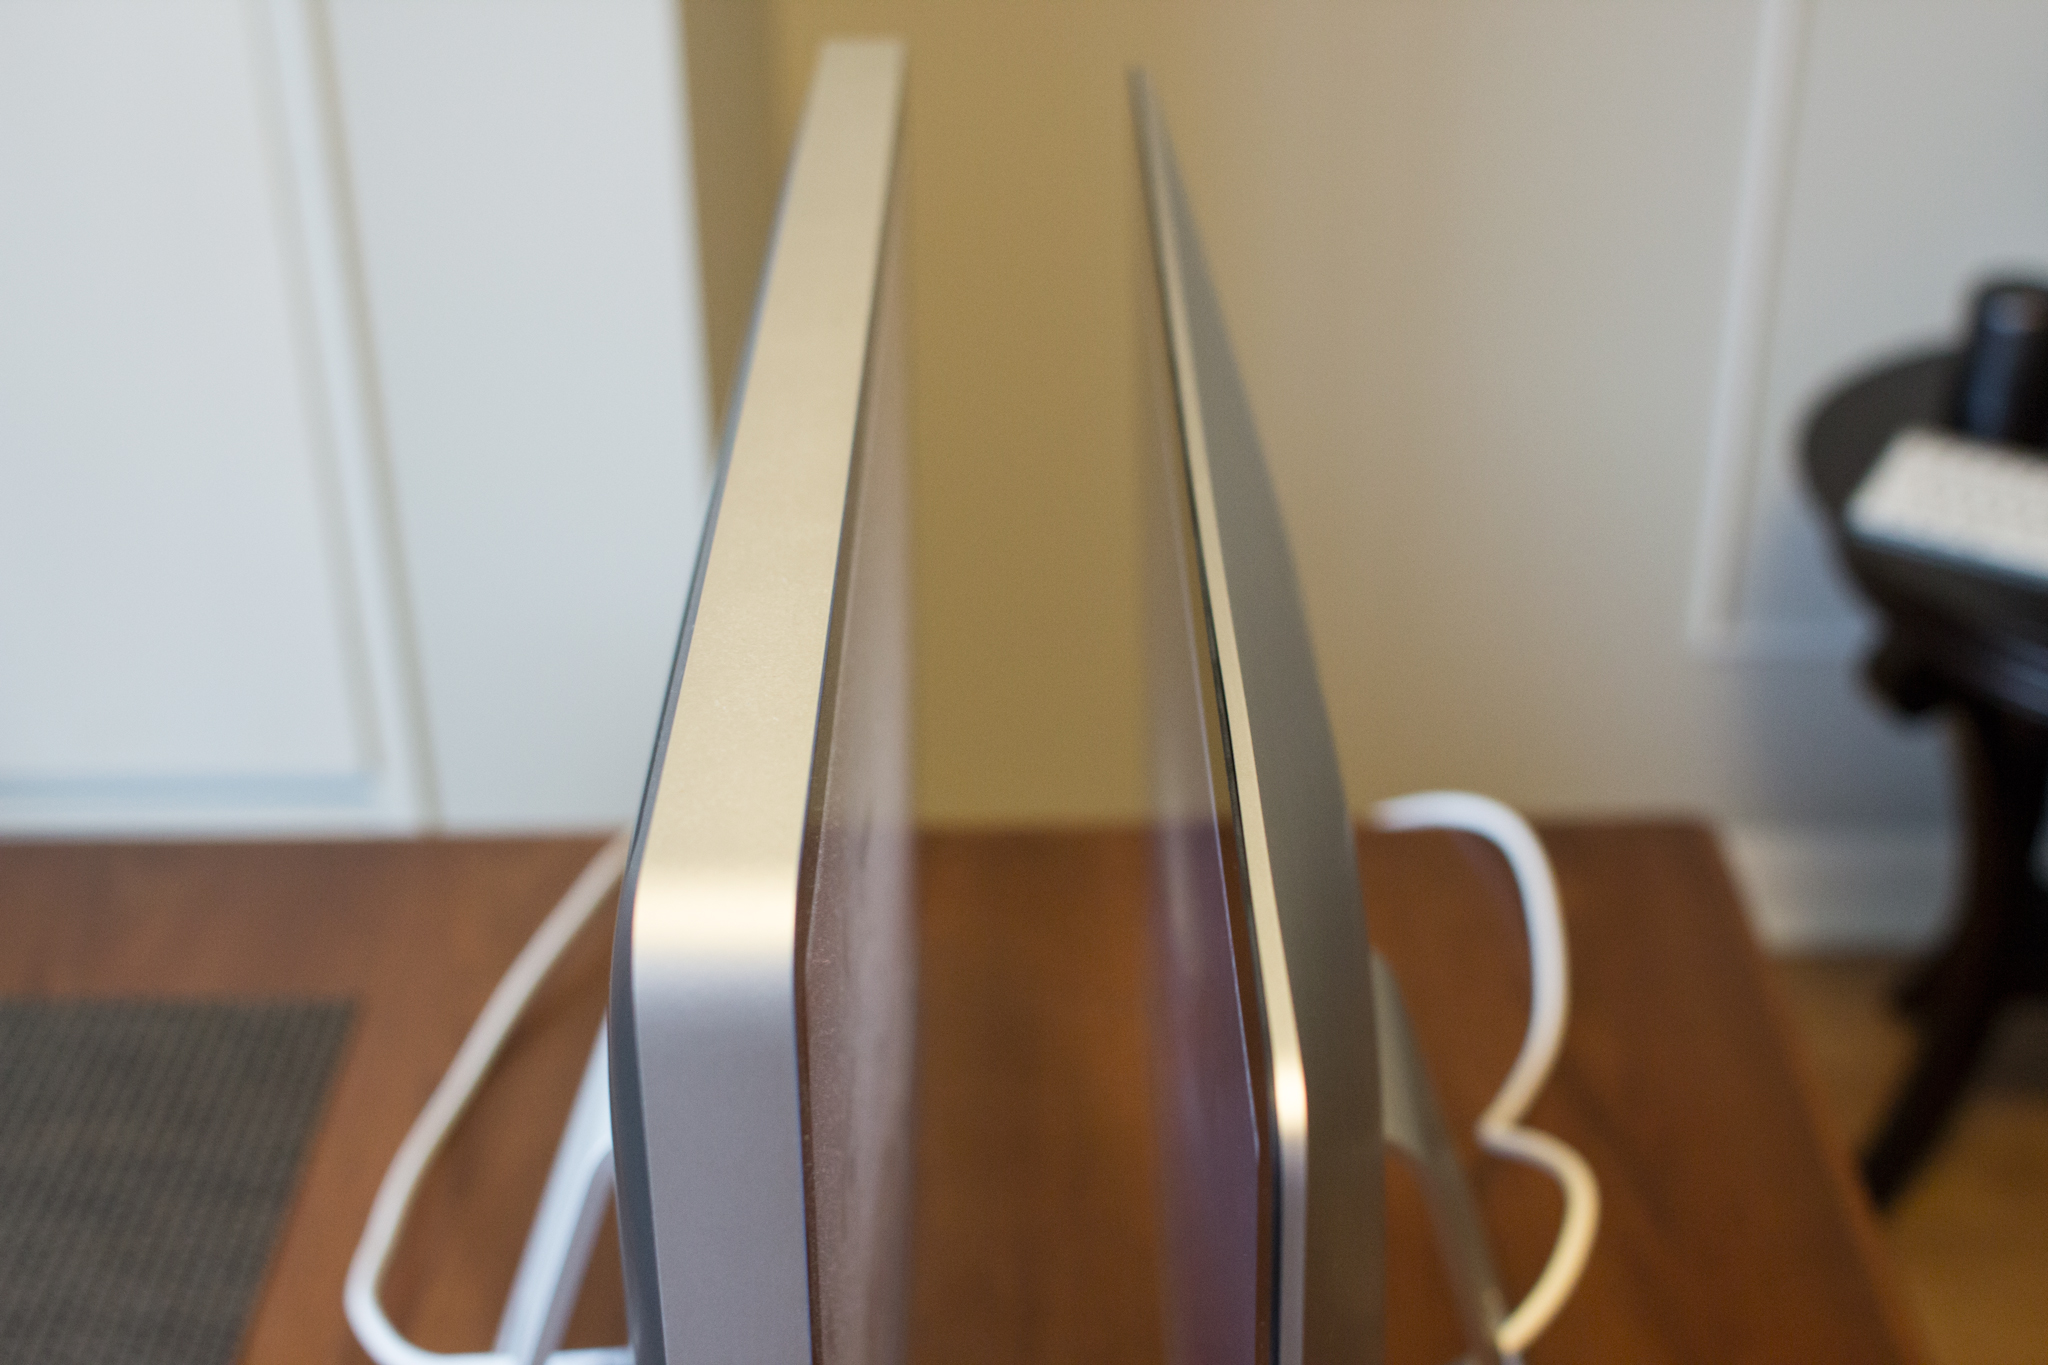 2008 iMac (right) and 2012 iMac (left) top thickness comparison